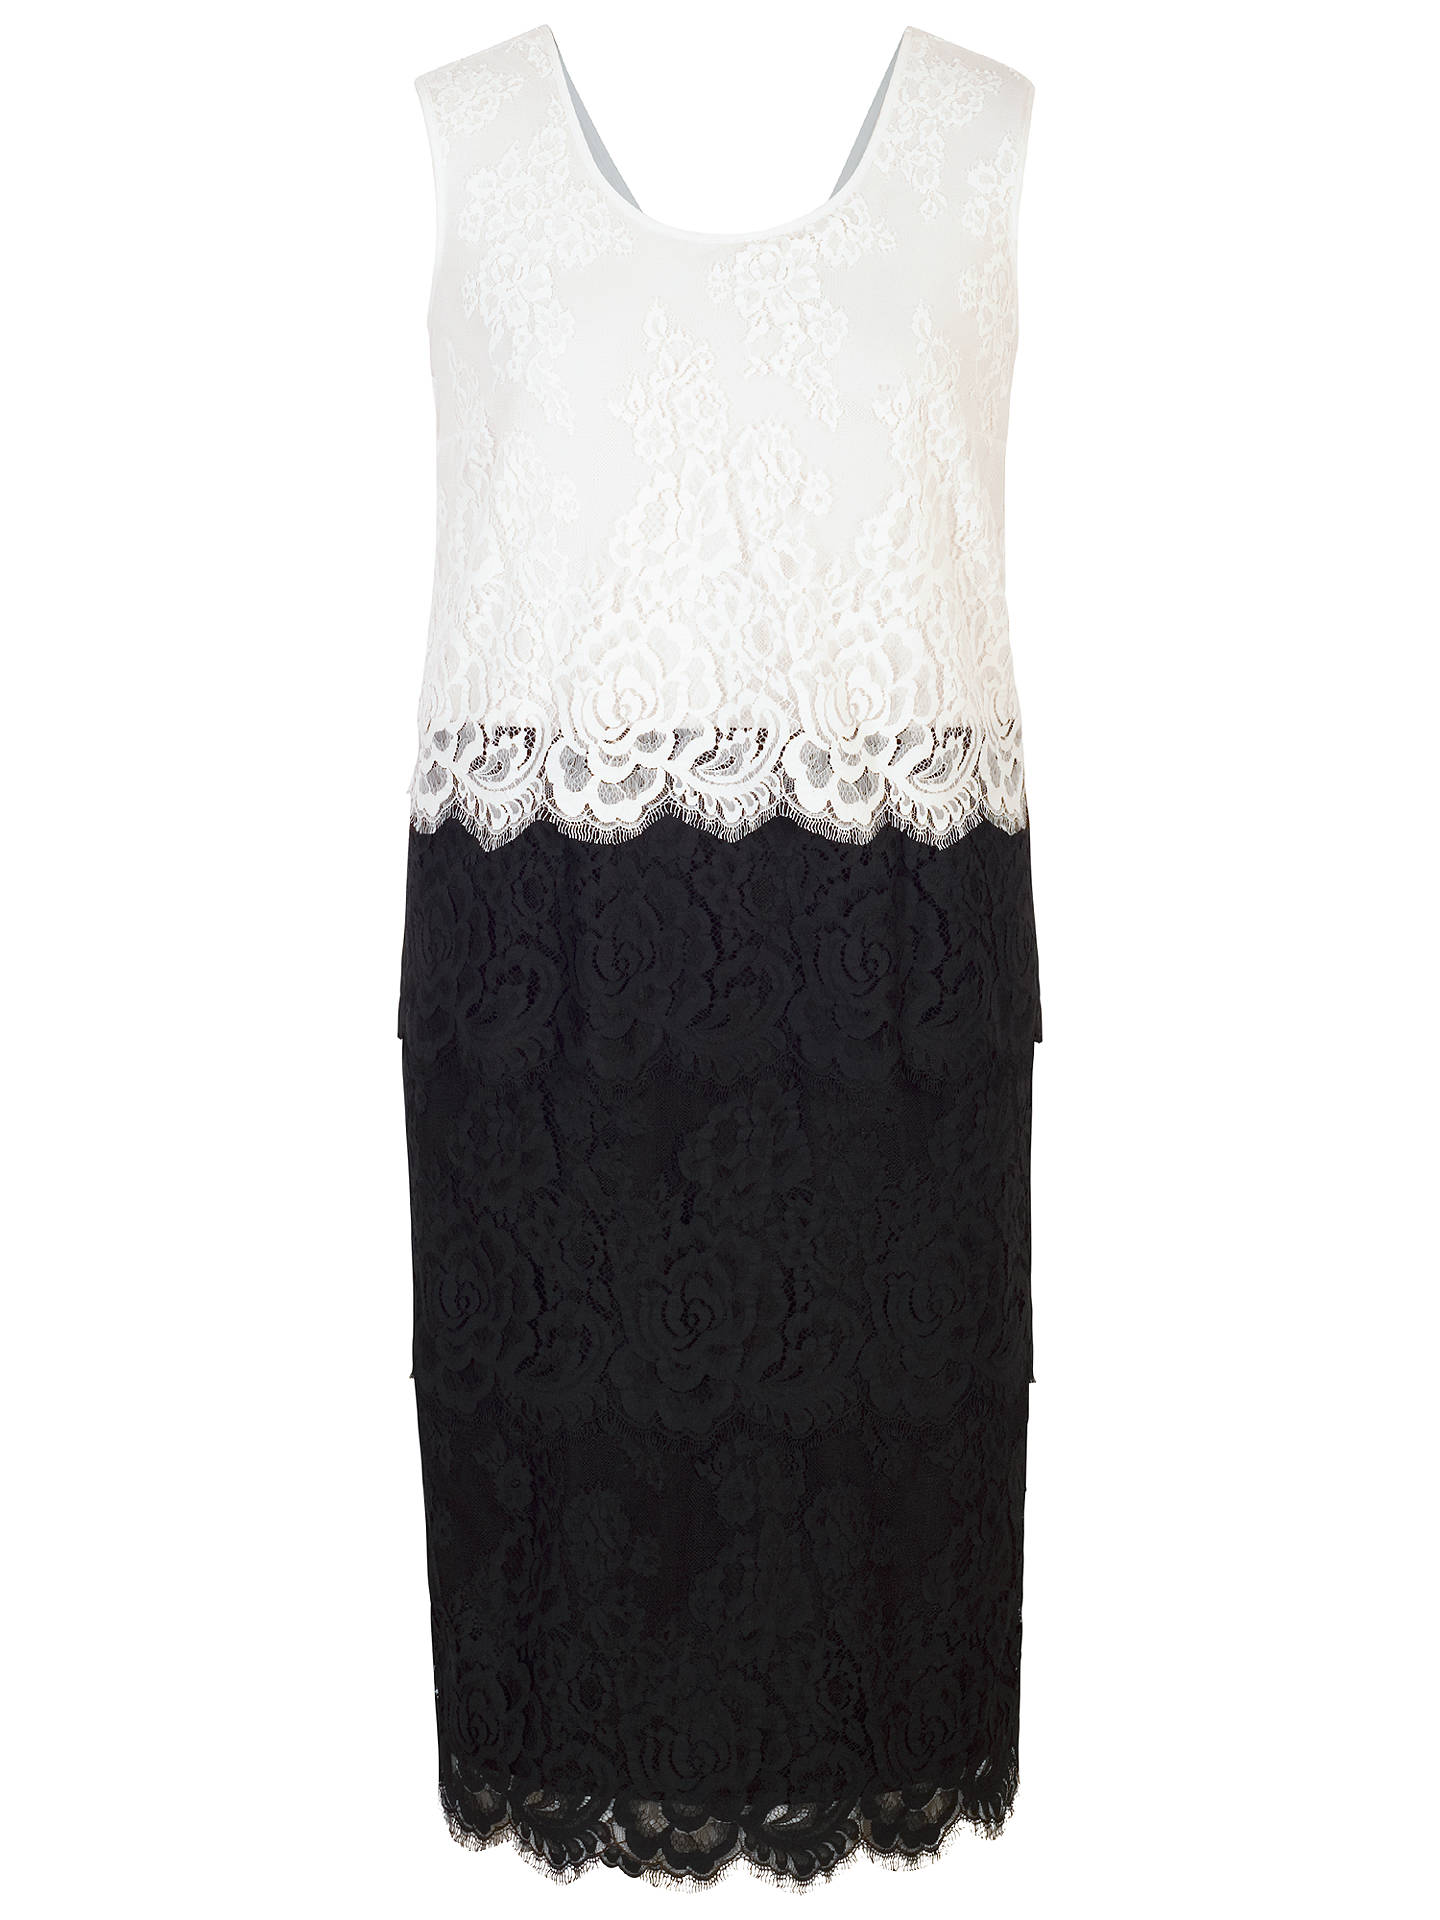 BuyChesca Scallop Trim Tiered Lace Dress, Black/White, 12 Online at johnlewis.com